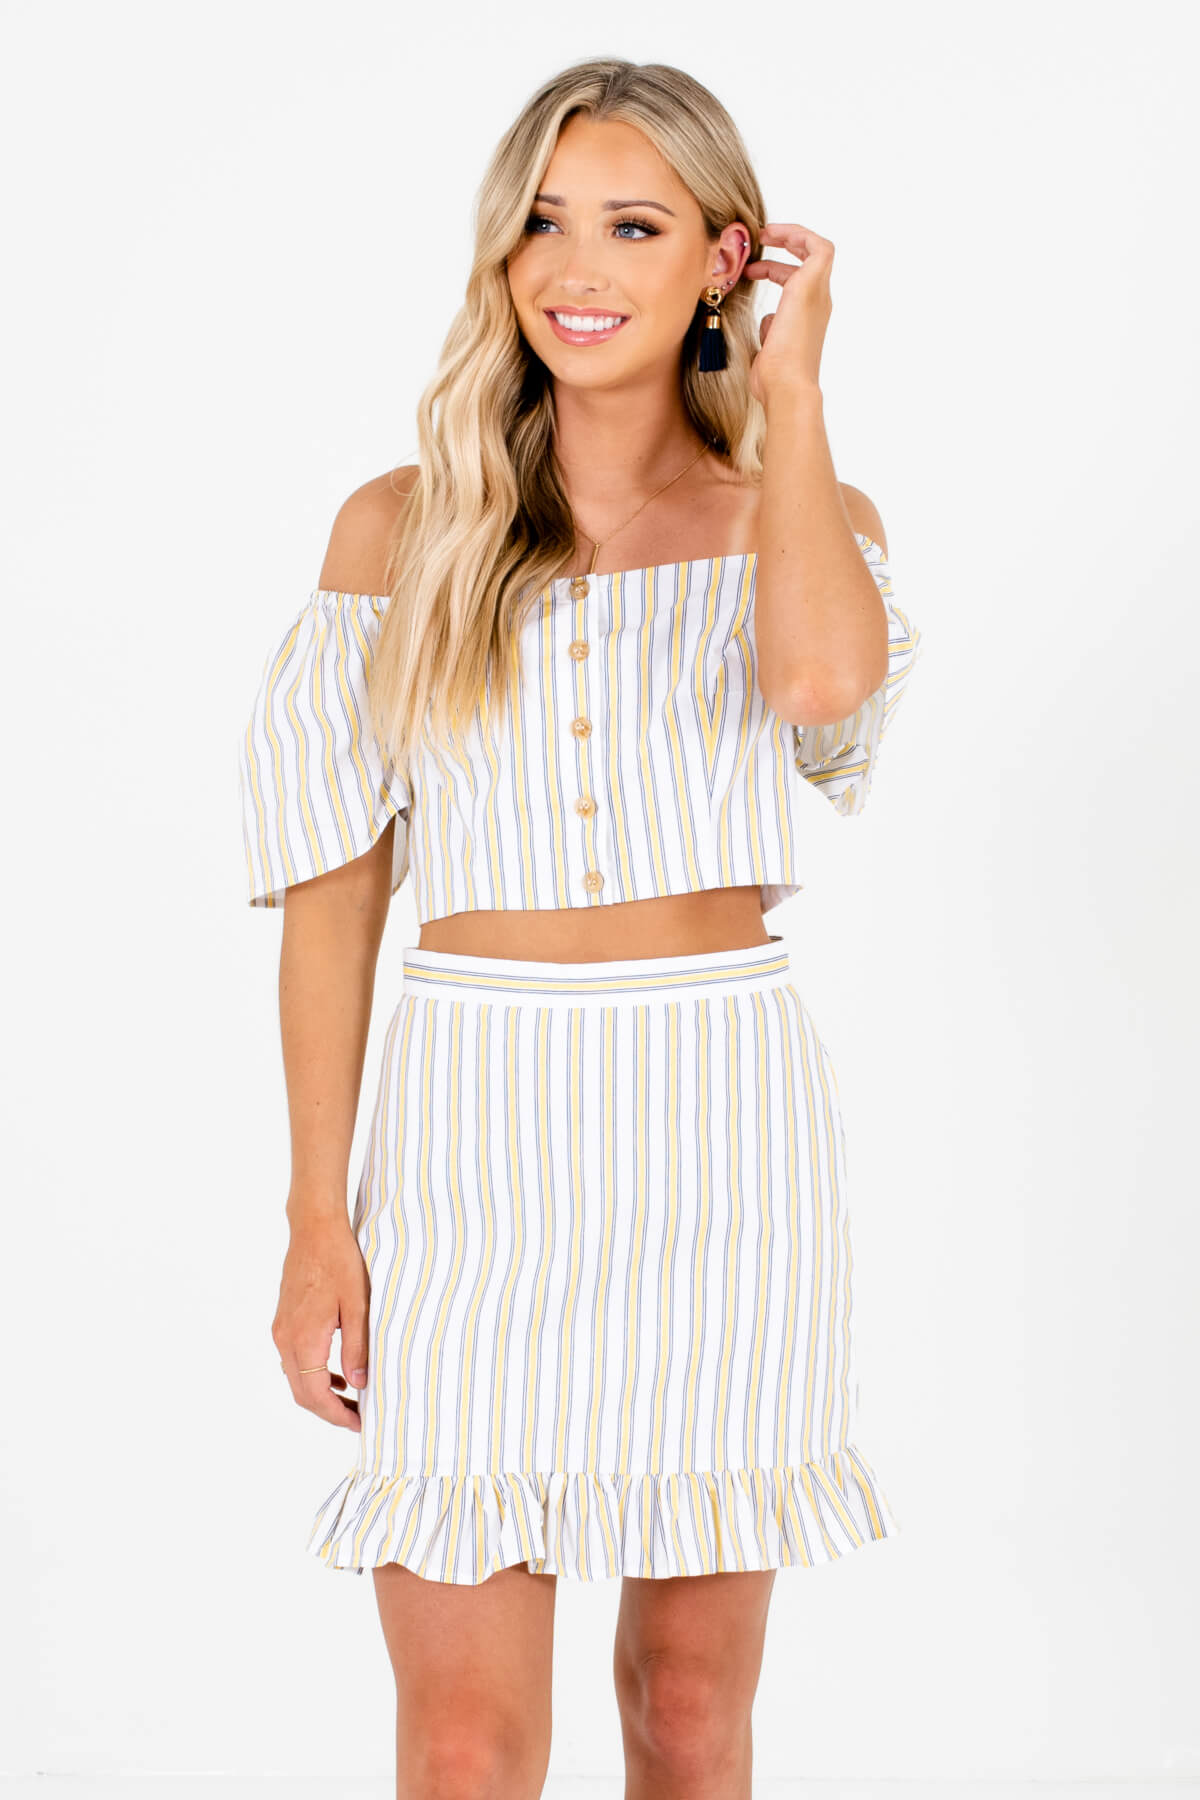 White Stripe Patterned Boutique Two-Piece Sets for Women